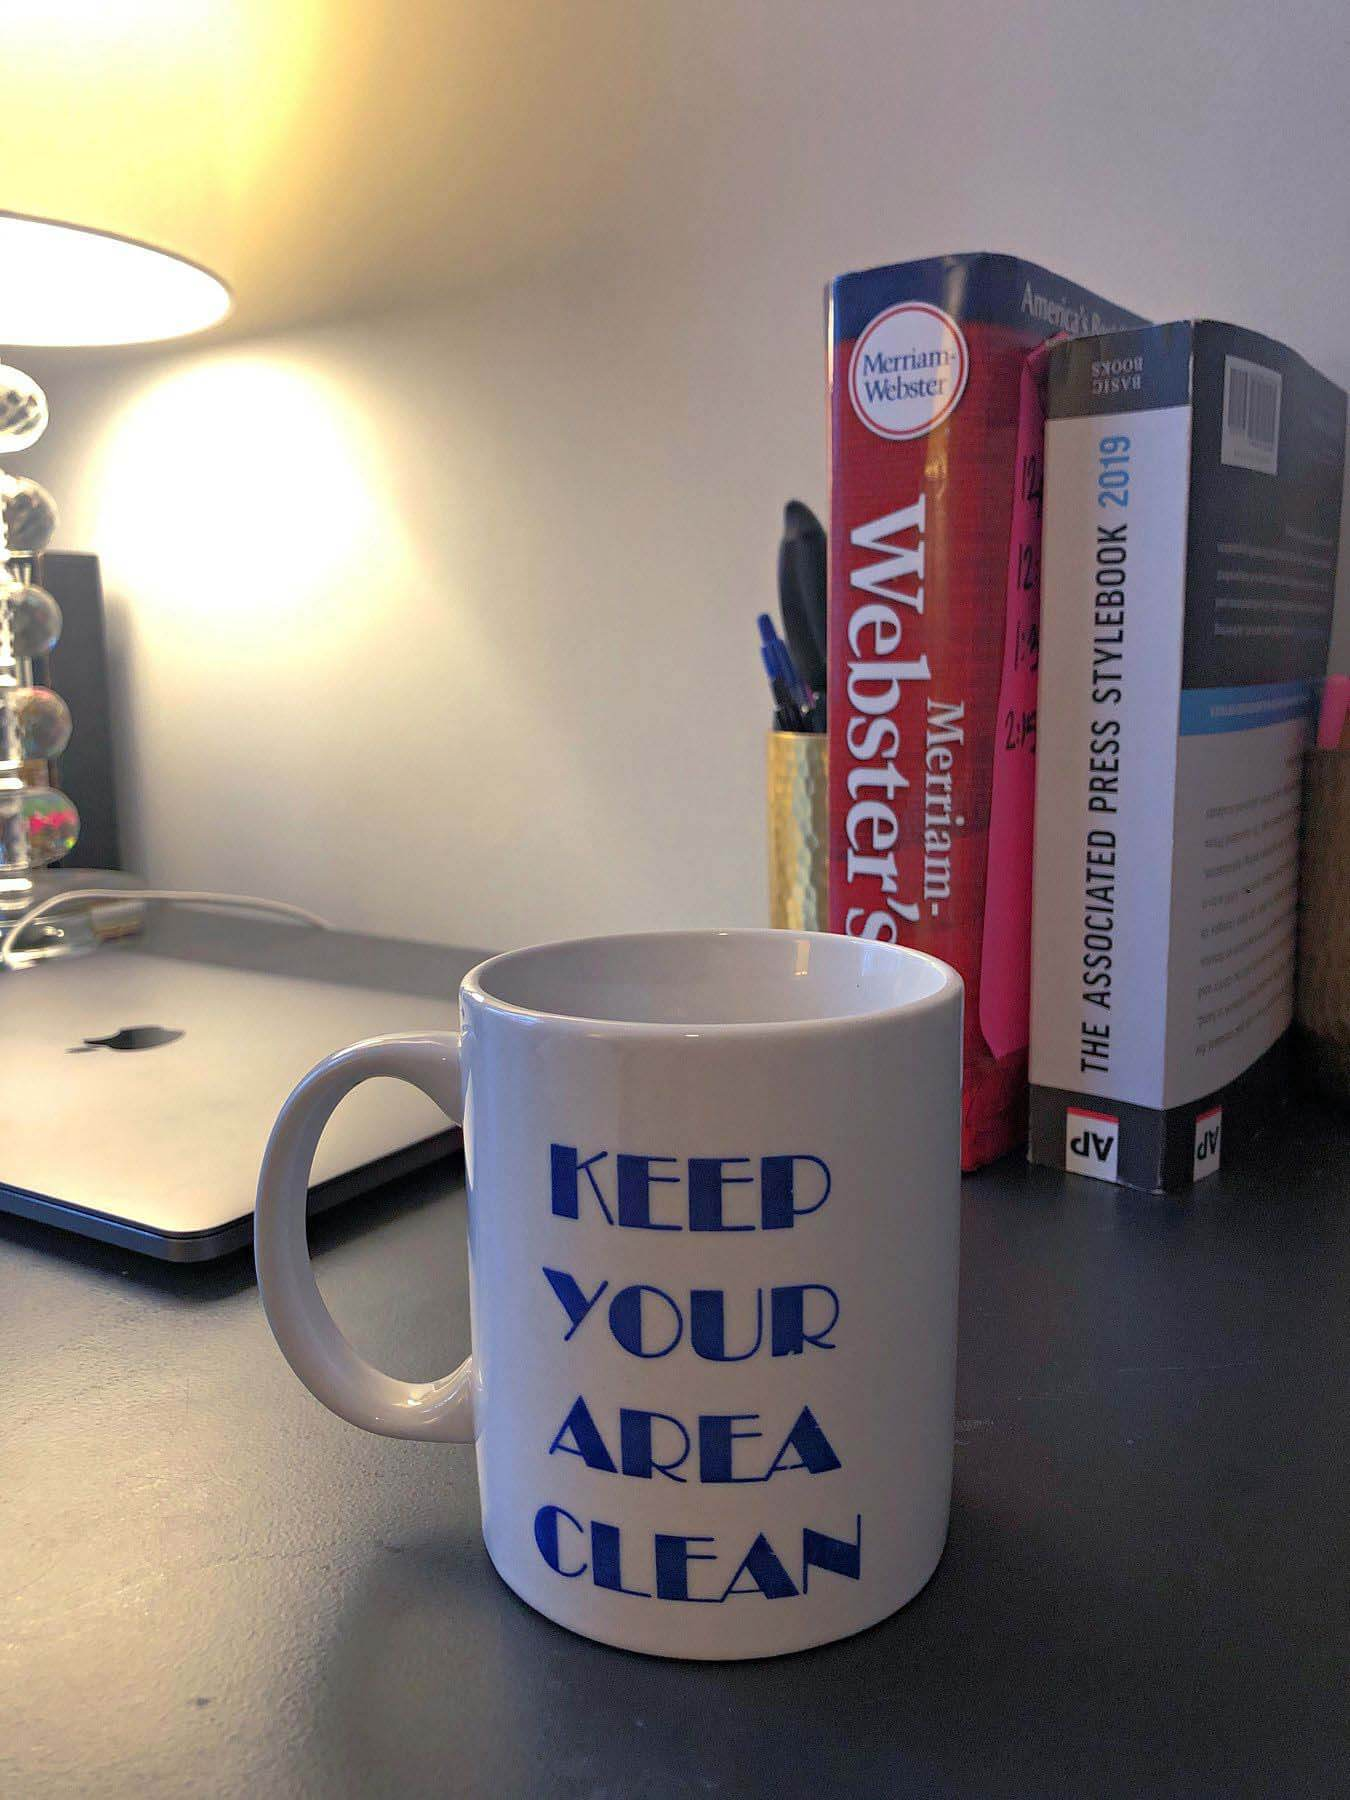 Keep your area clean coffee mug on work from home desk